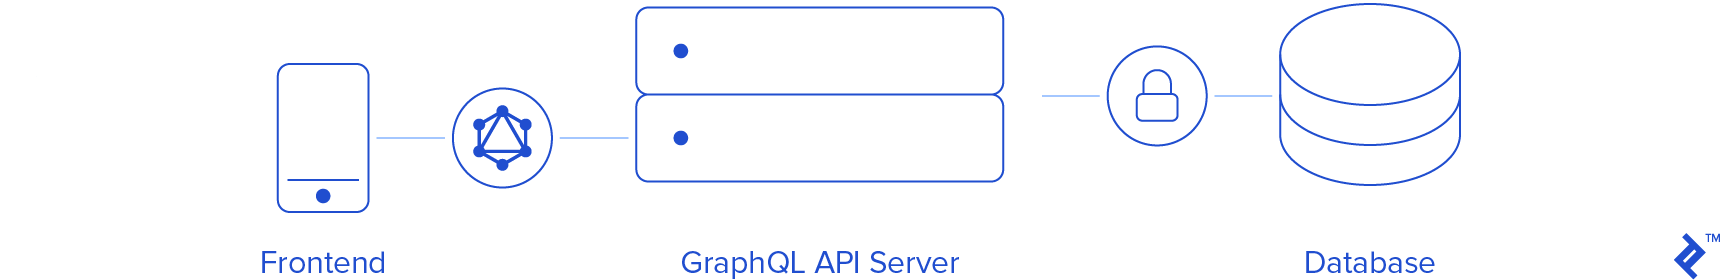 Tutorial: Laravel GraphQL Server | Toptal